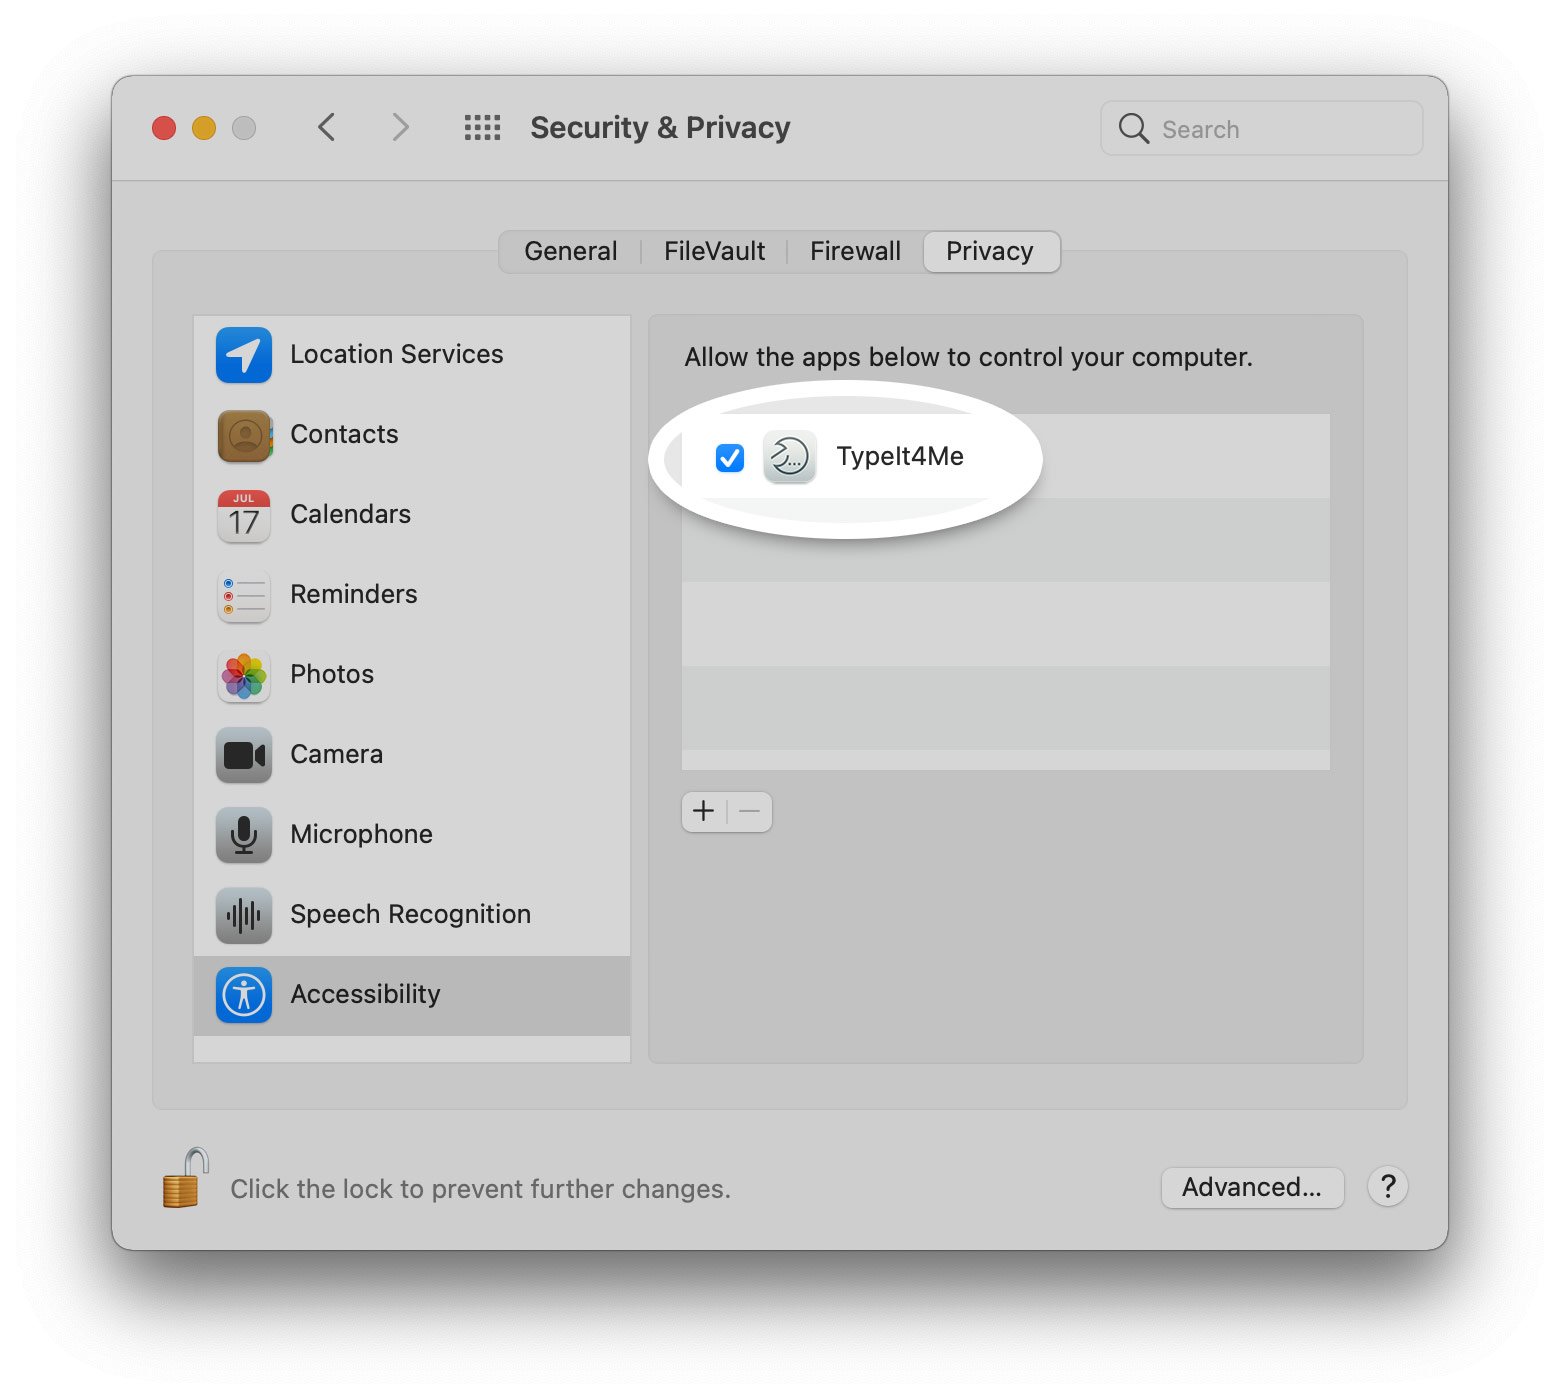 TypeIt4Me in the Accessibility section of Security & Privacy system preferences